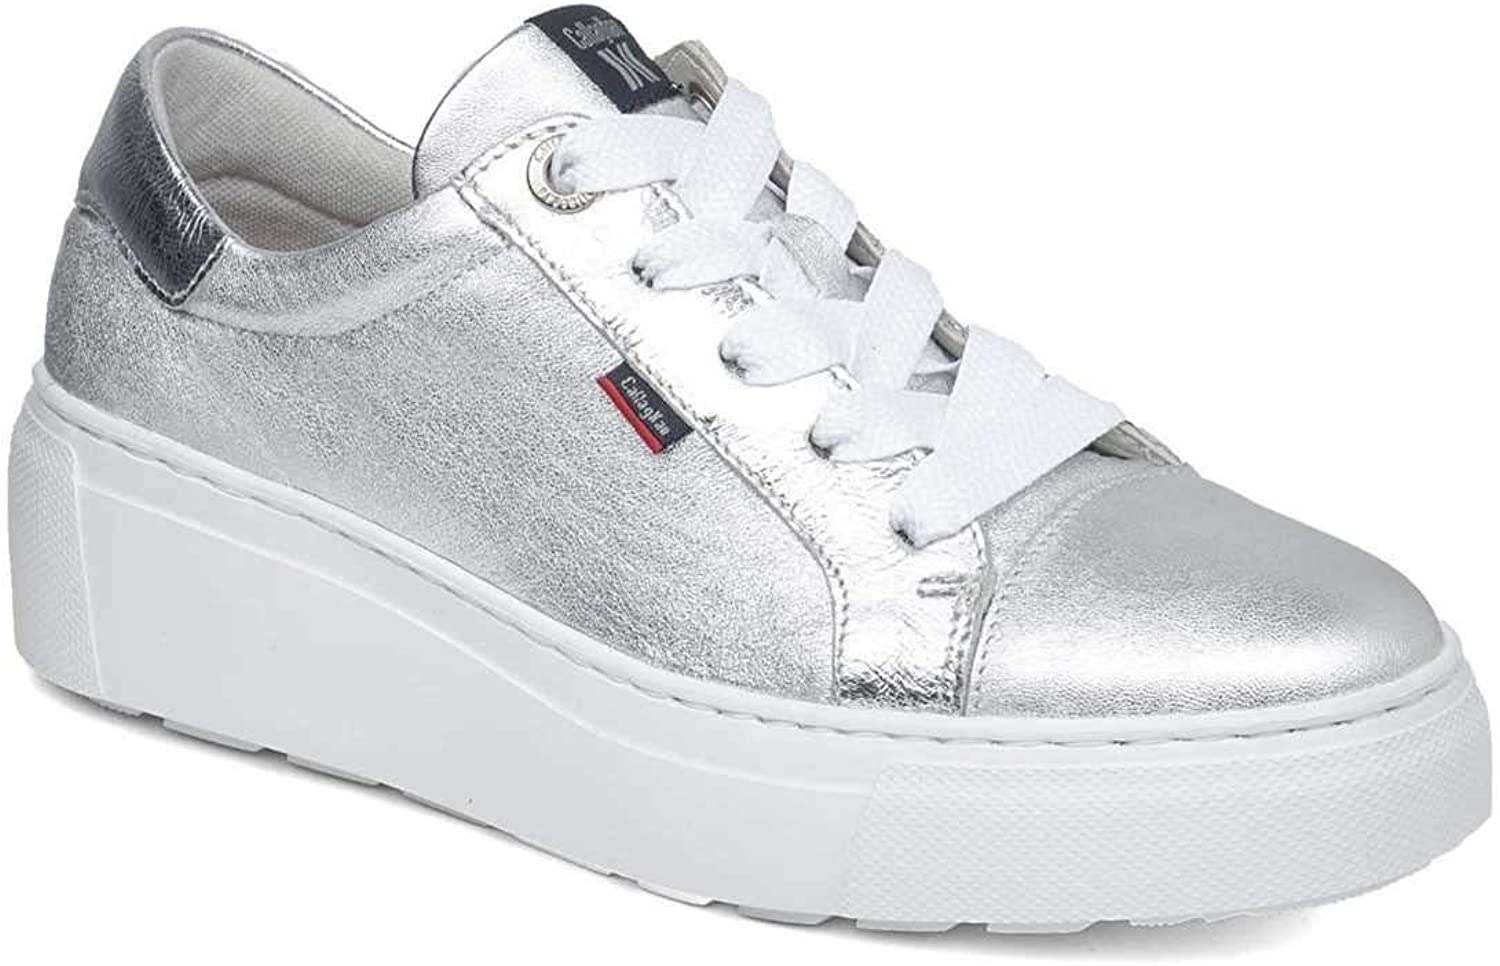 CALLAGHAN 14913 Moon LINE Sneakers lace-up shoes Woman Silver Leather